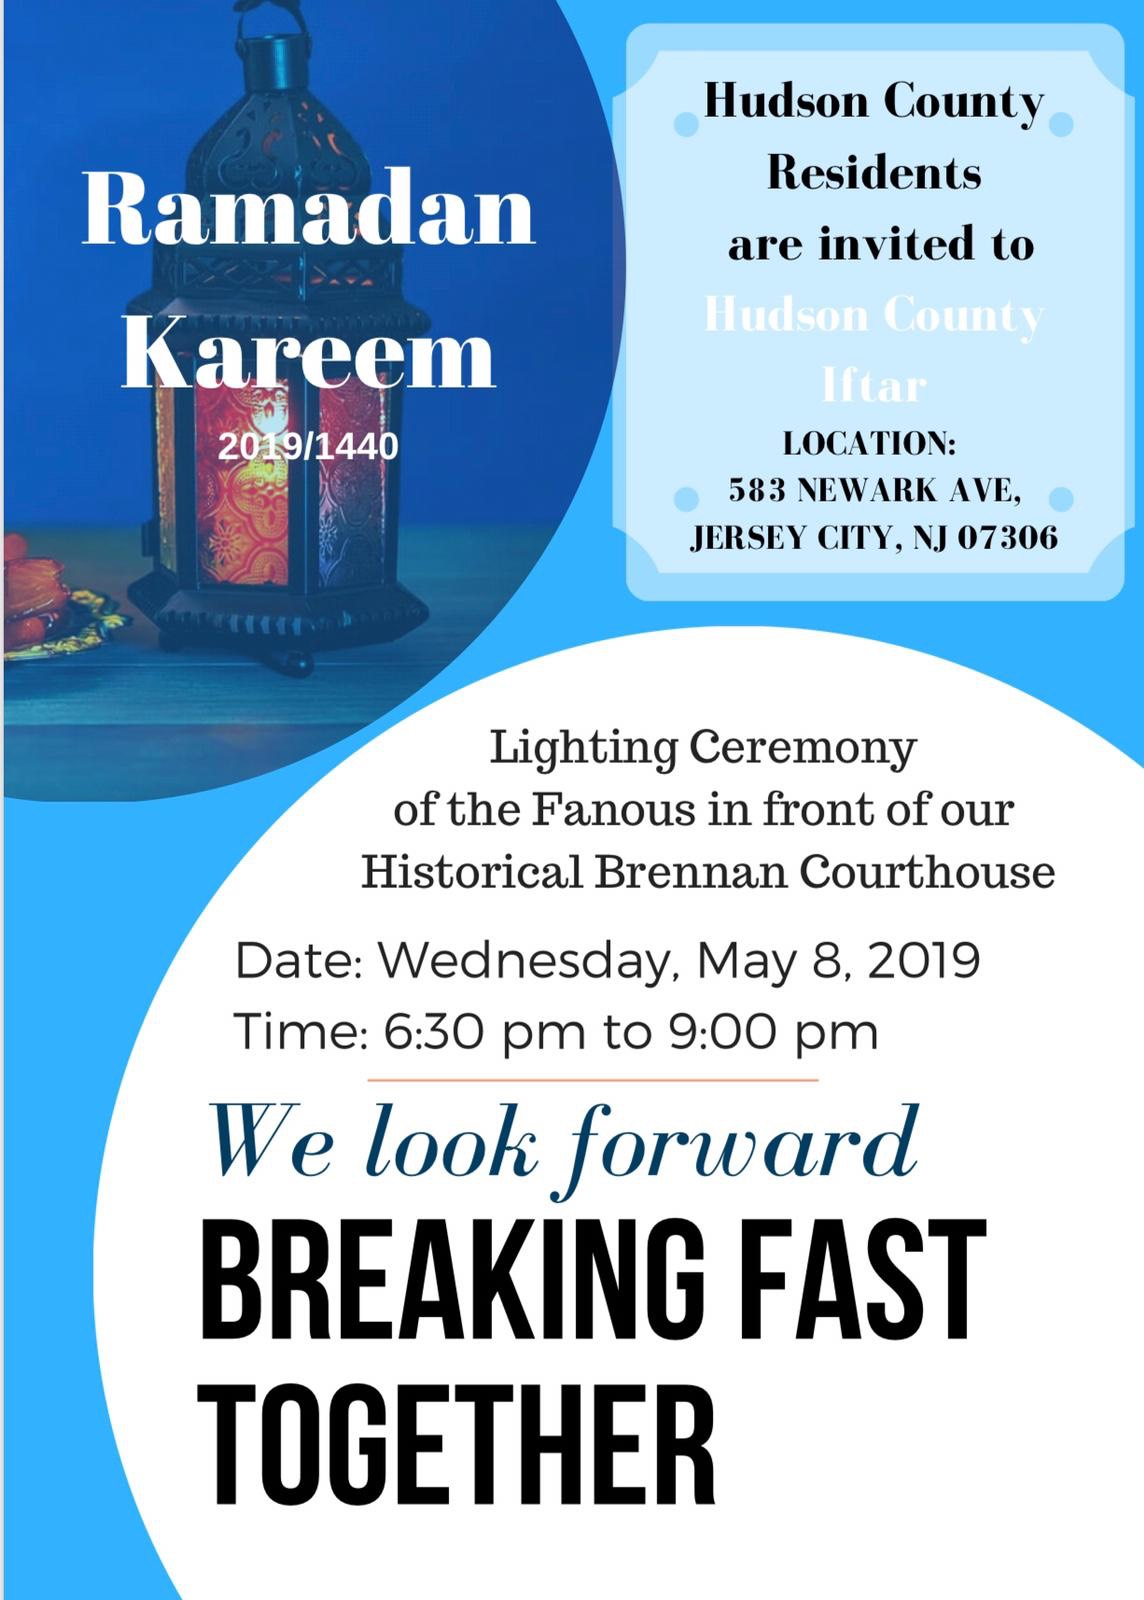 Interfaith Iftar Listings — The Shoulder to Shoulder Campaign